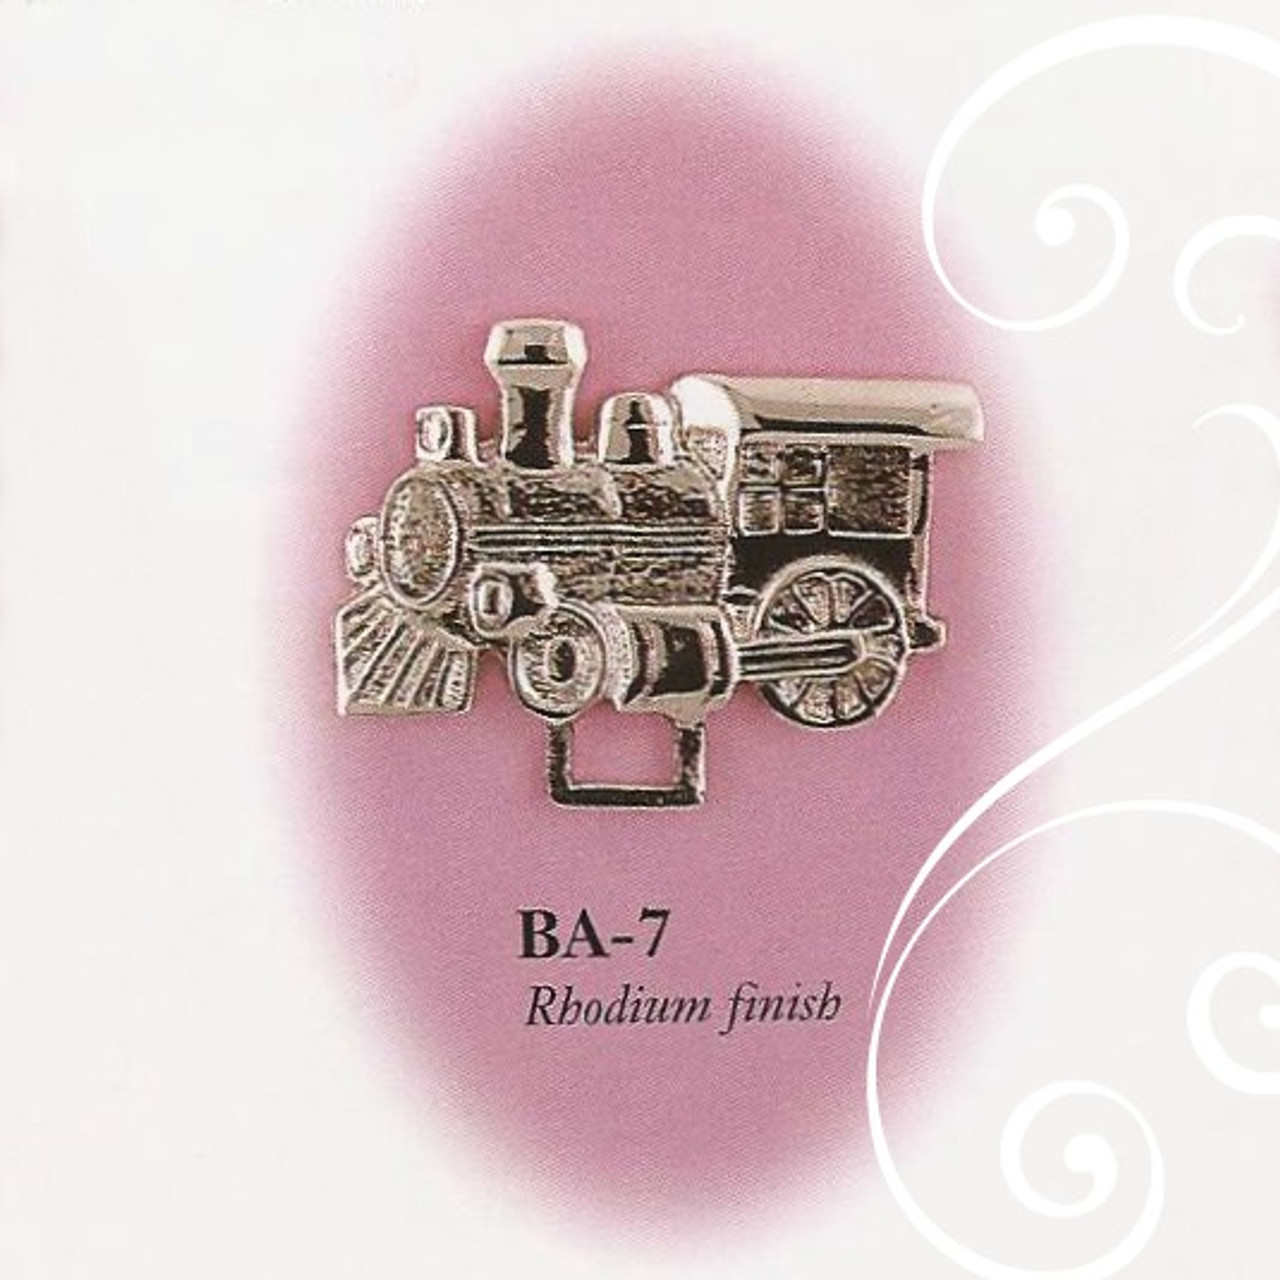 BA-7 Train Paci Holder